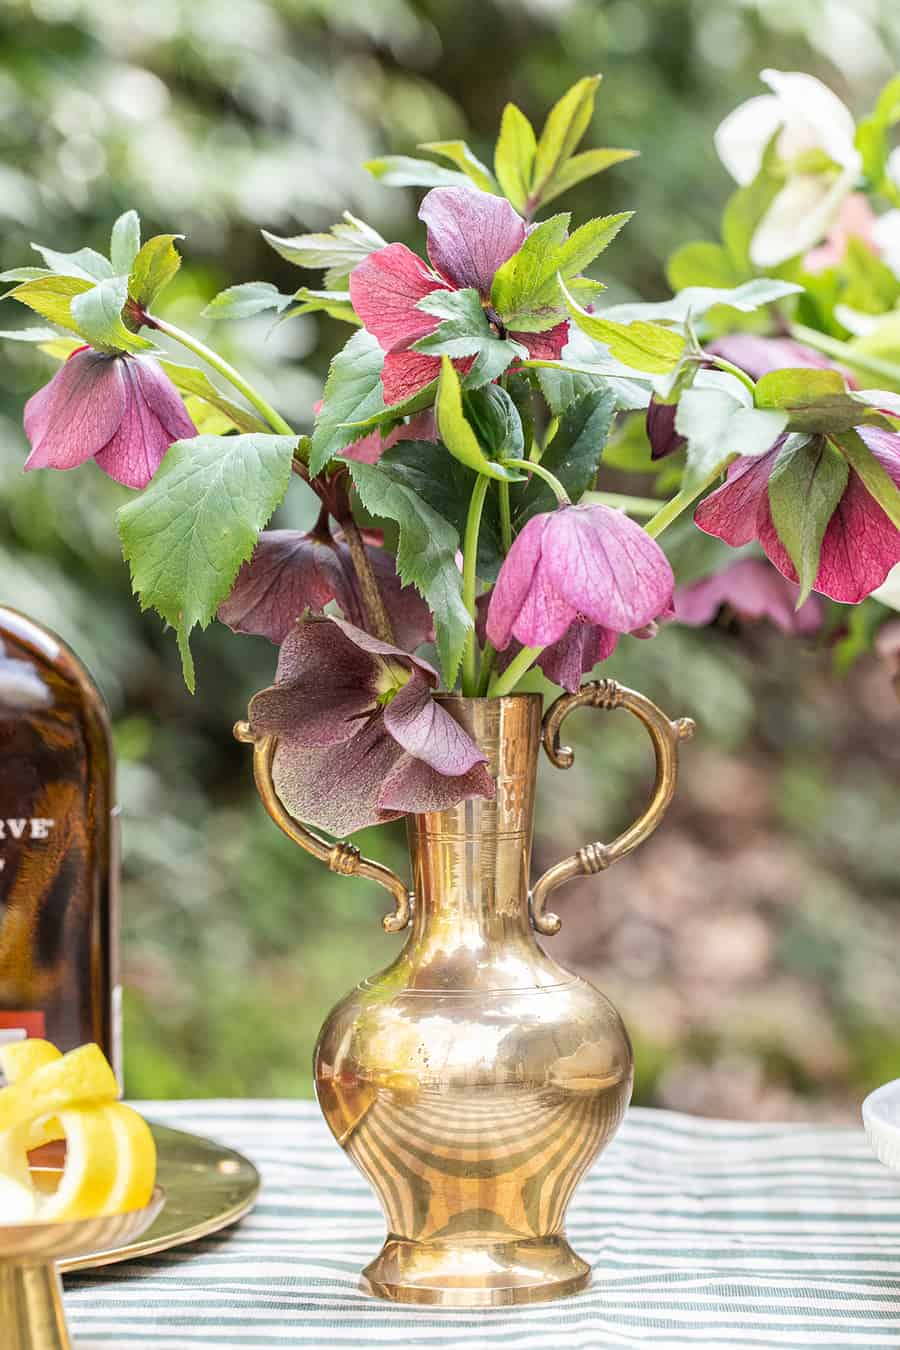 Flowers in an antique gold vase for a Kentucky Derby party